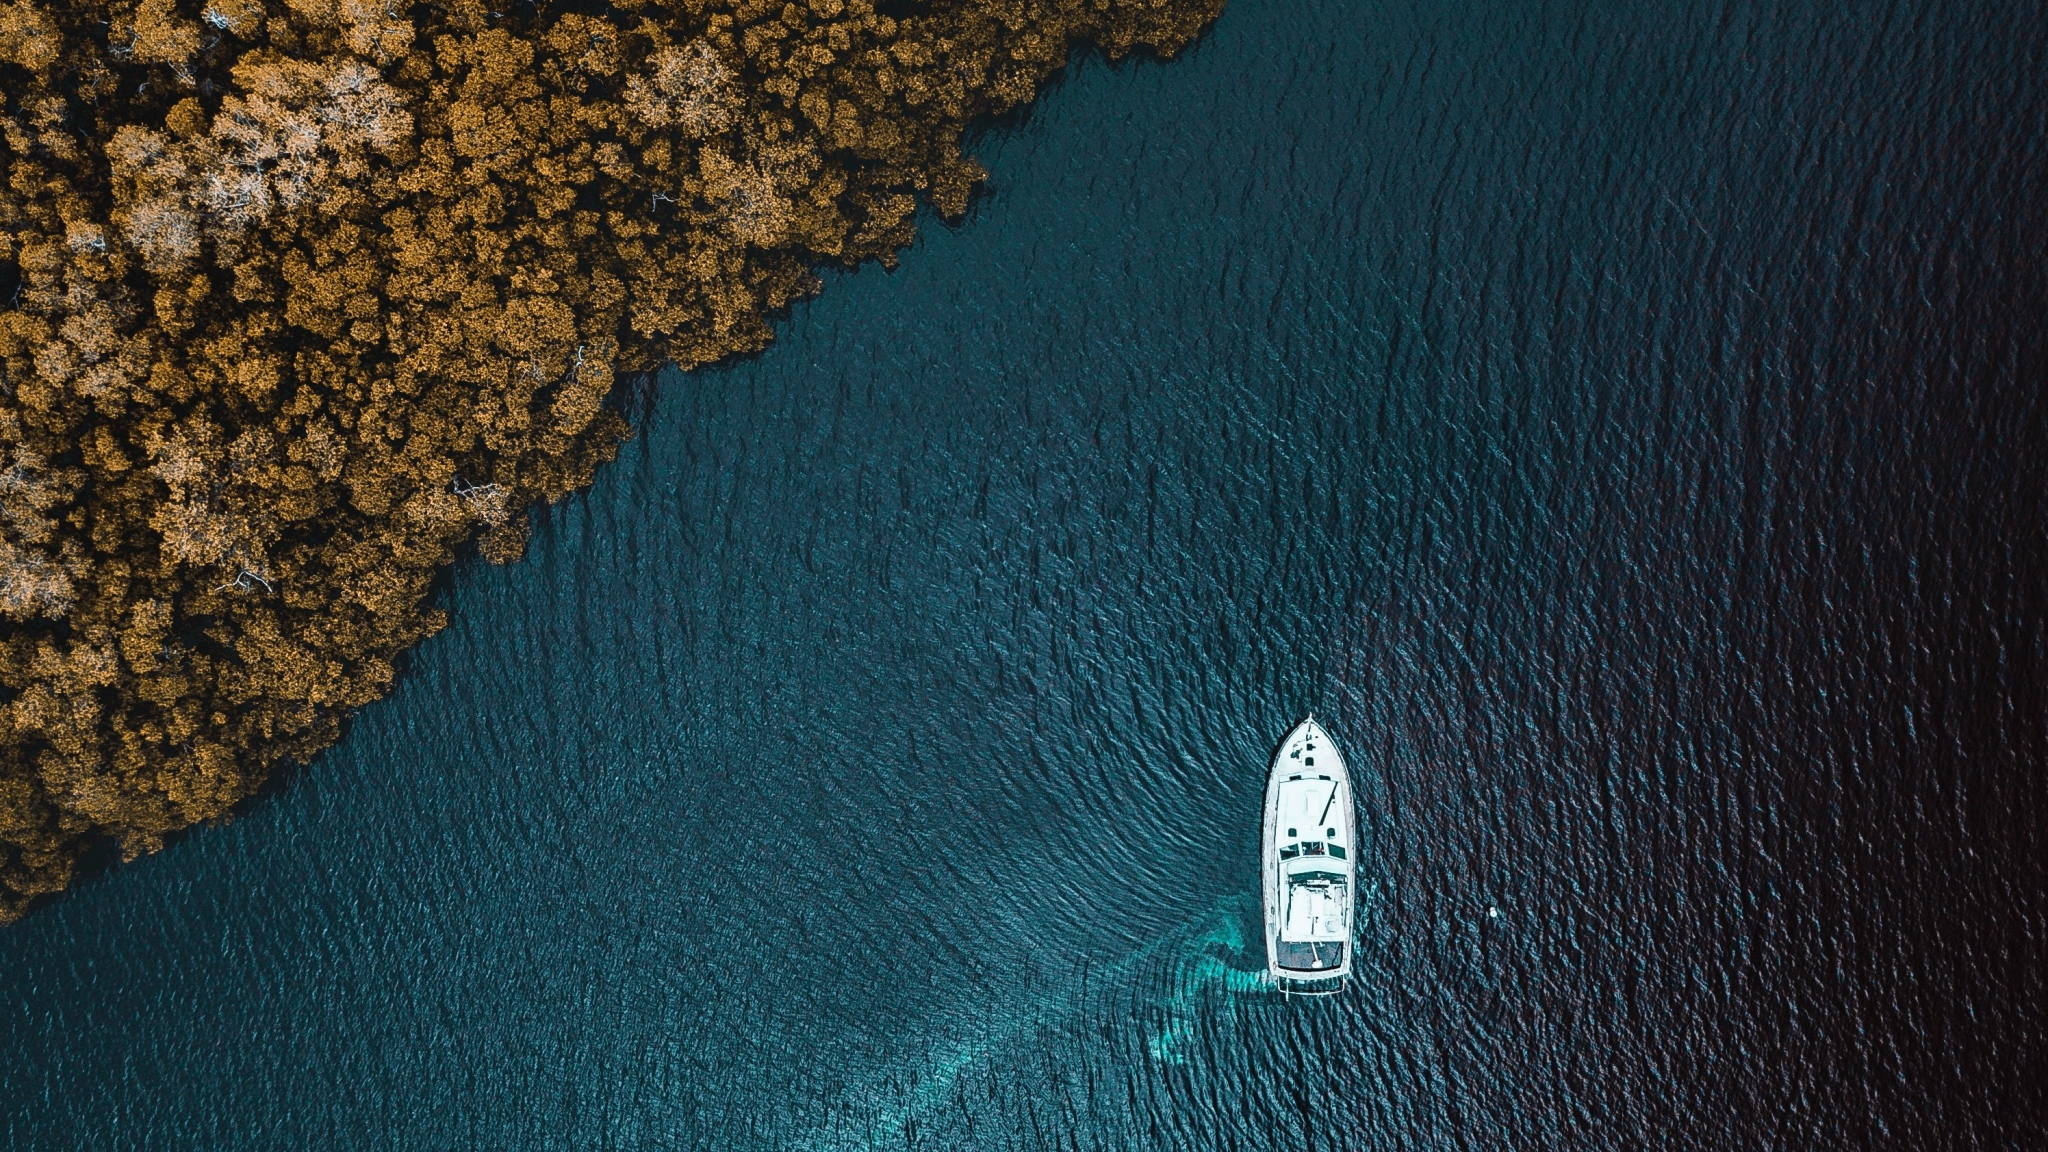 Aerial view, sea, forest, boat, 2048x1152 wallpaper